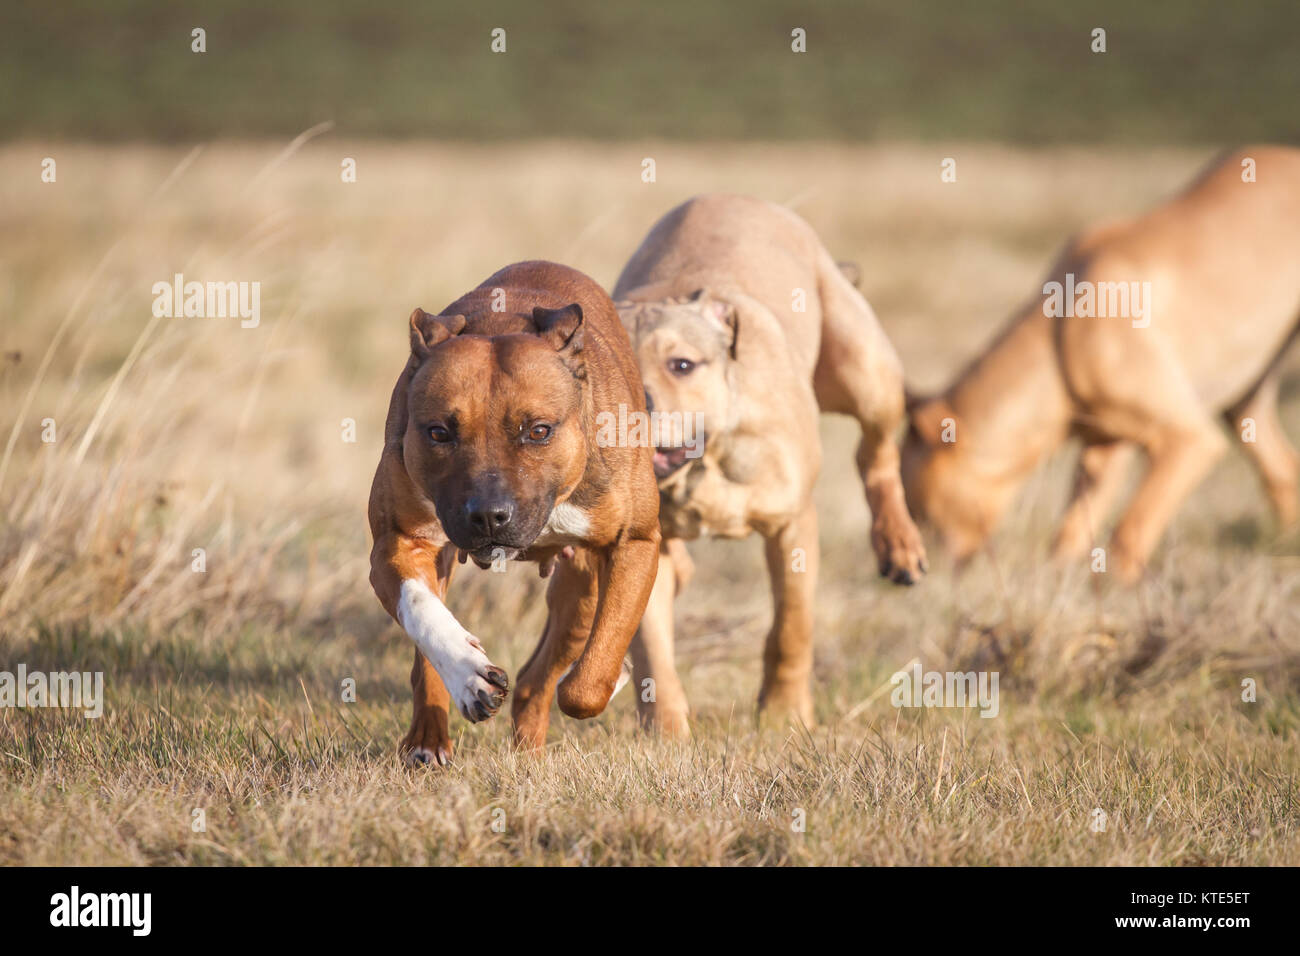 American Pit Bull Terriers running and playing - Stock Image